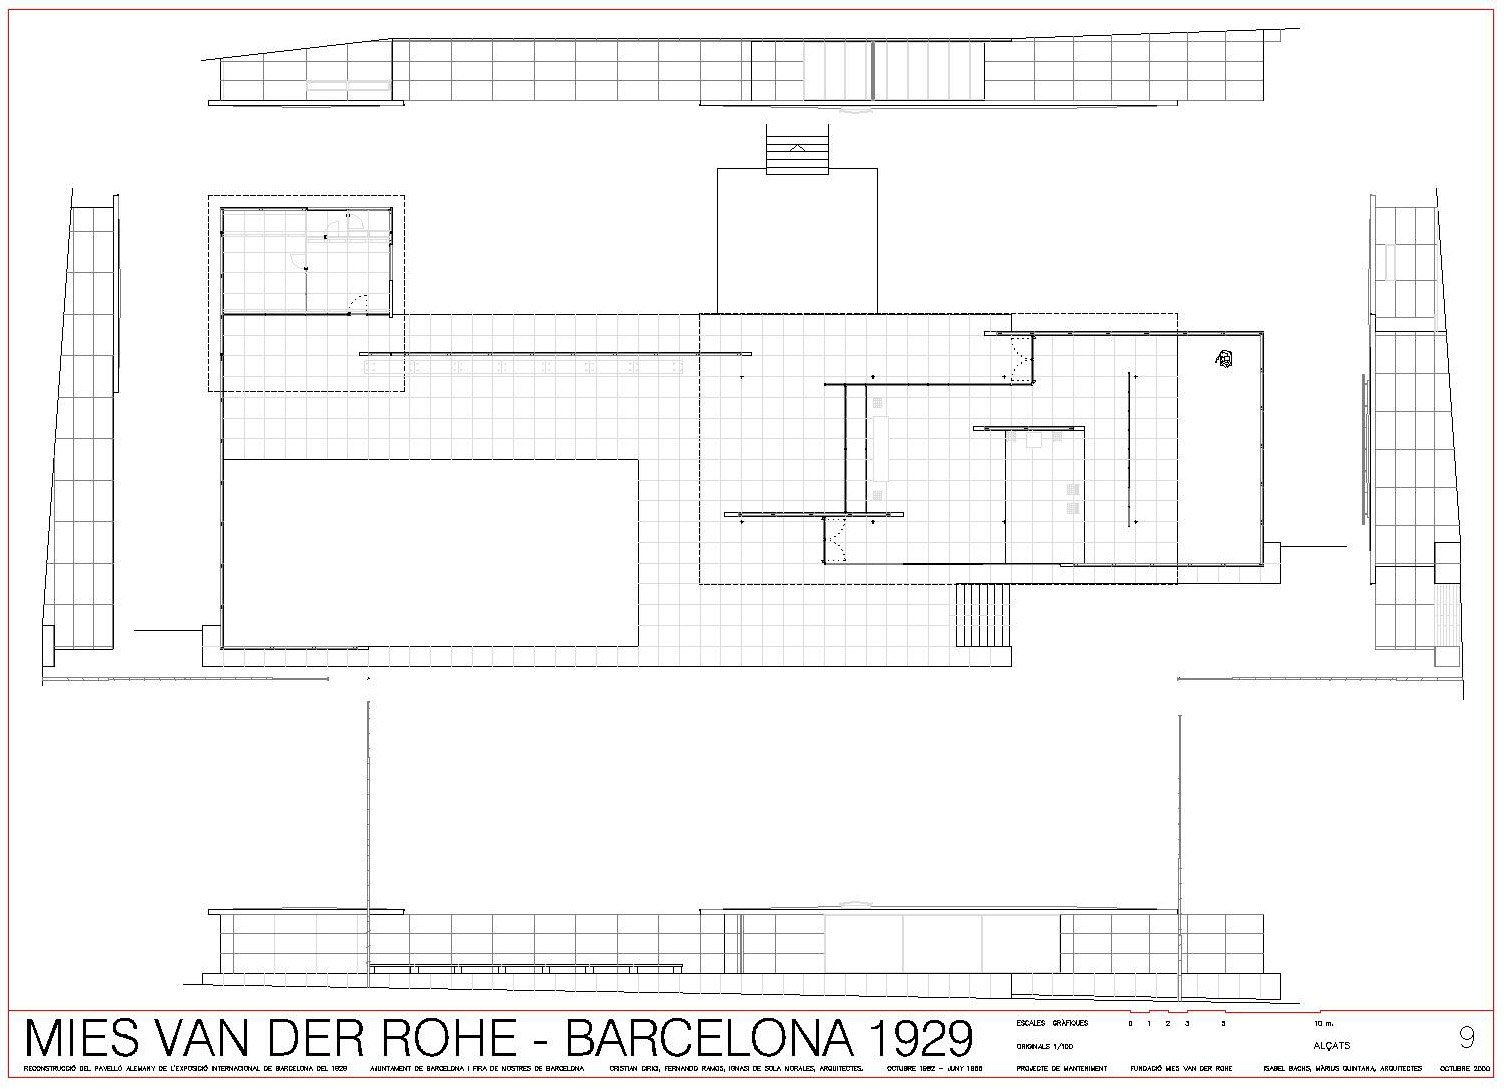 Barcelona Pavilion Section Drawing